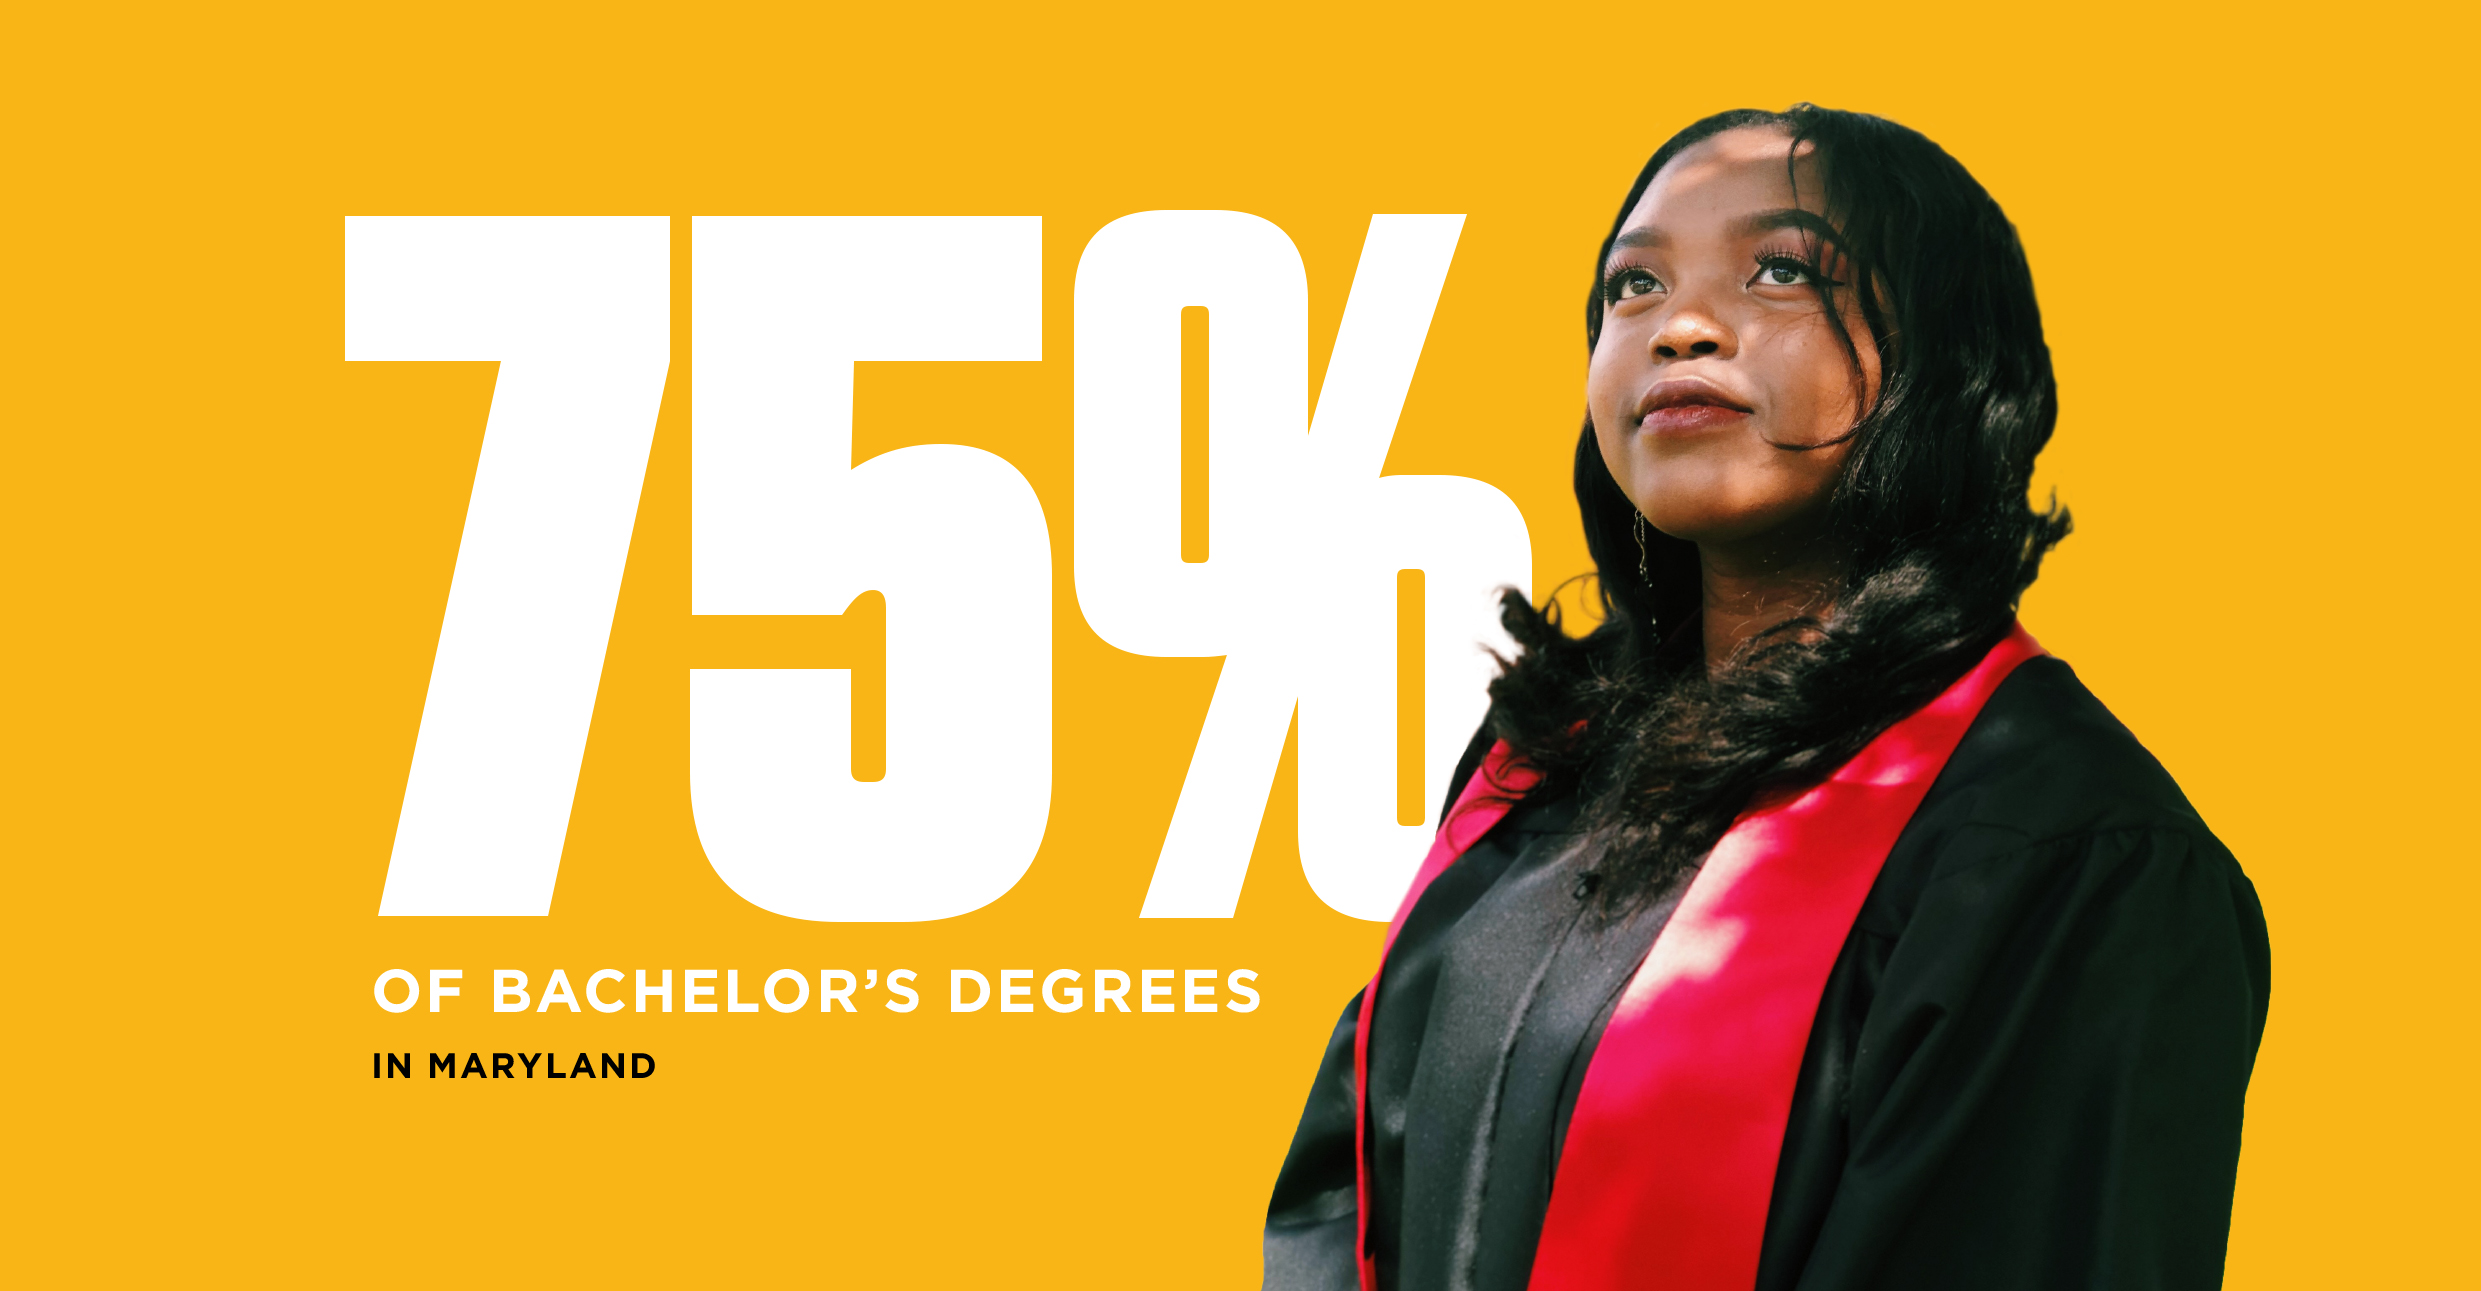 75% of bachelor's degrees in Maryland are awarded by USM